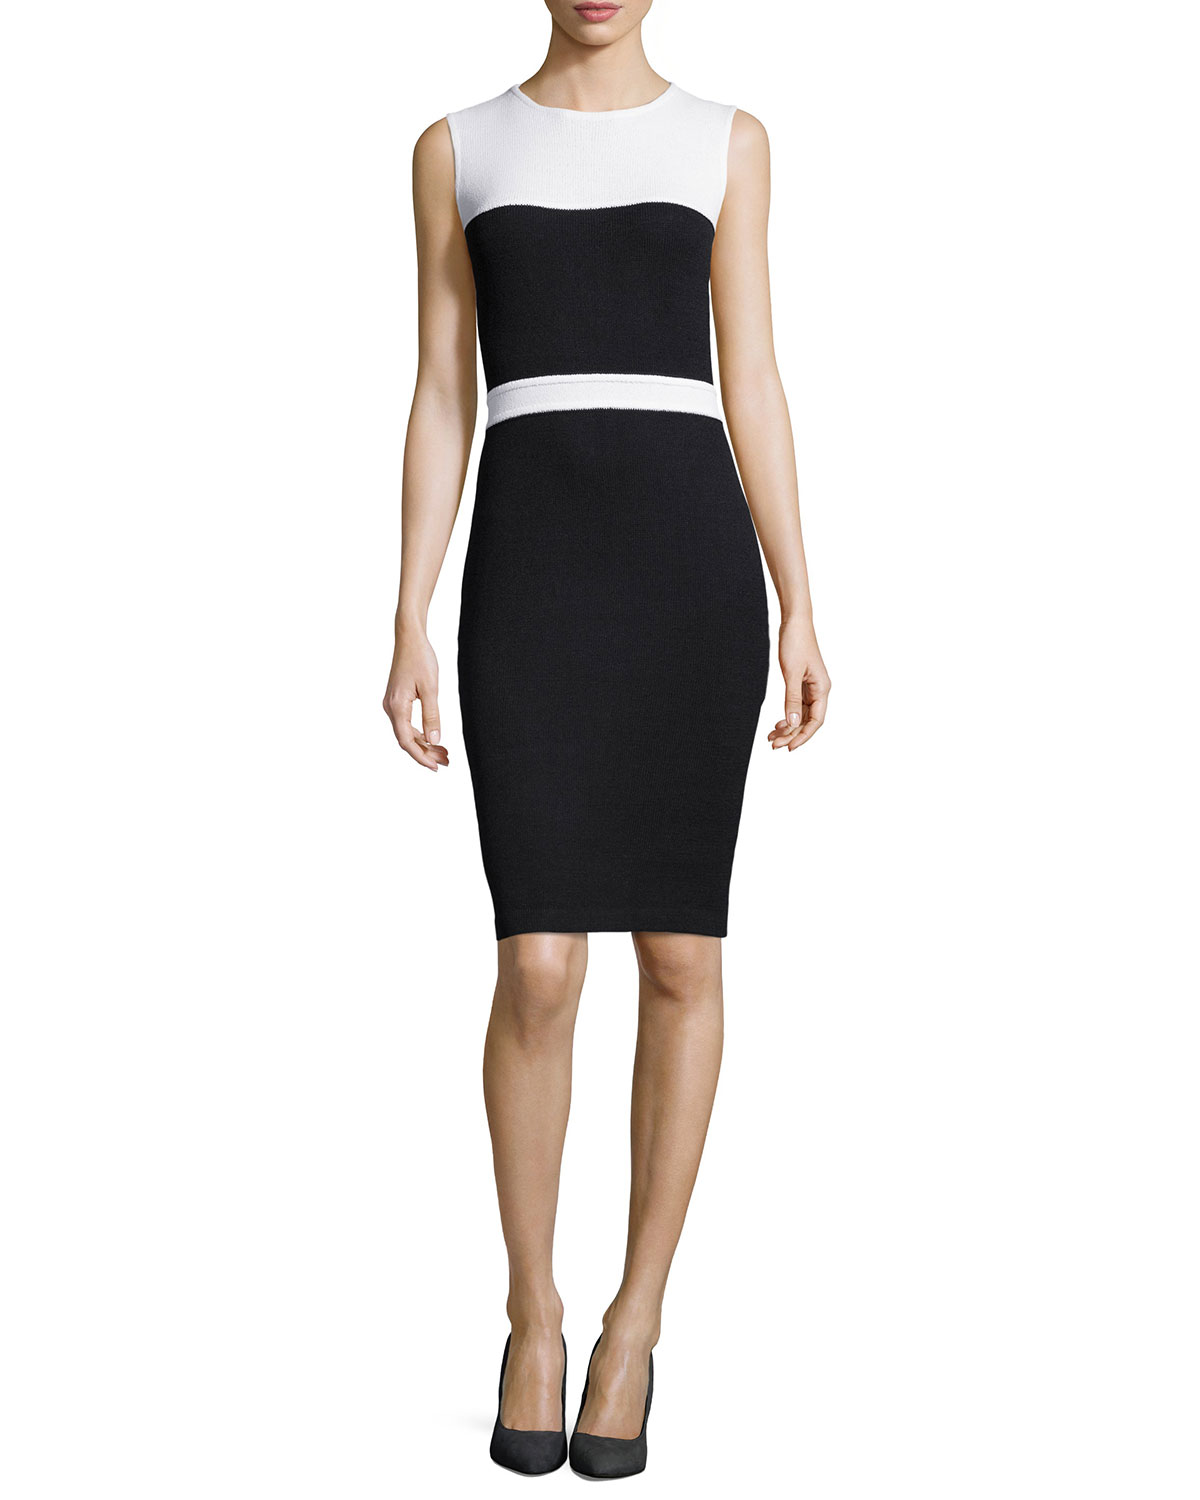 St. John - Women's Santana Knit Sleeveless Colorblock Dress, Onyx/White - St. John - Onyx/Bright white (14)